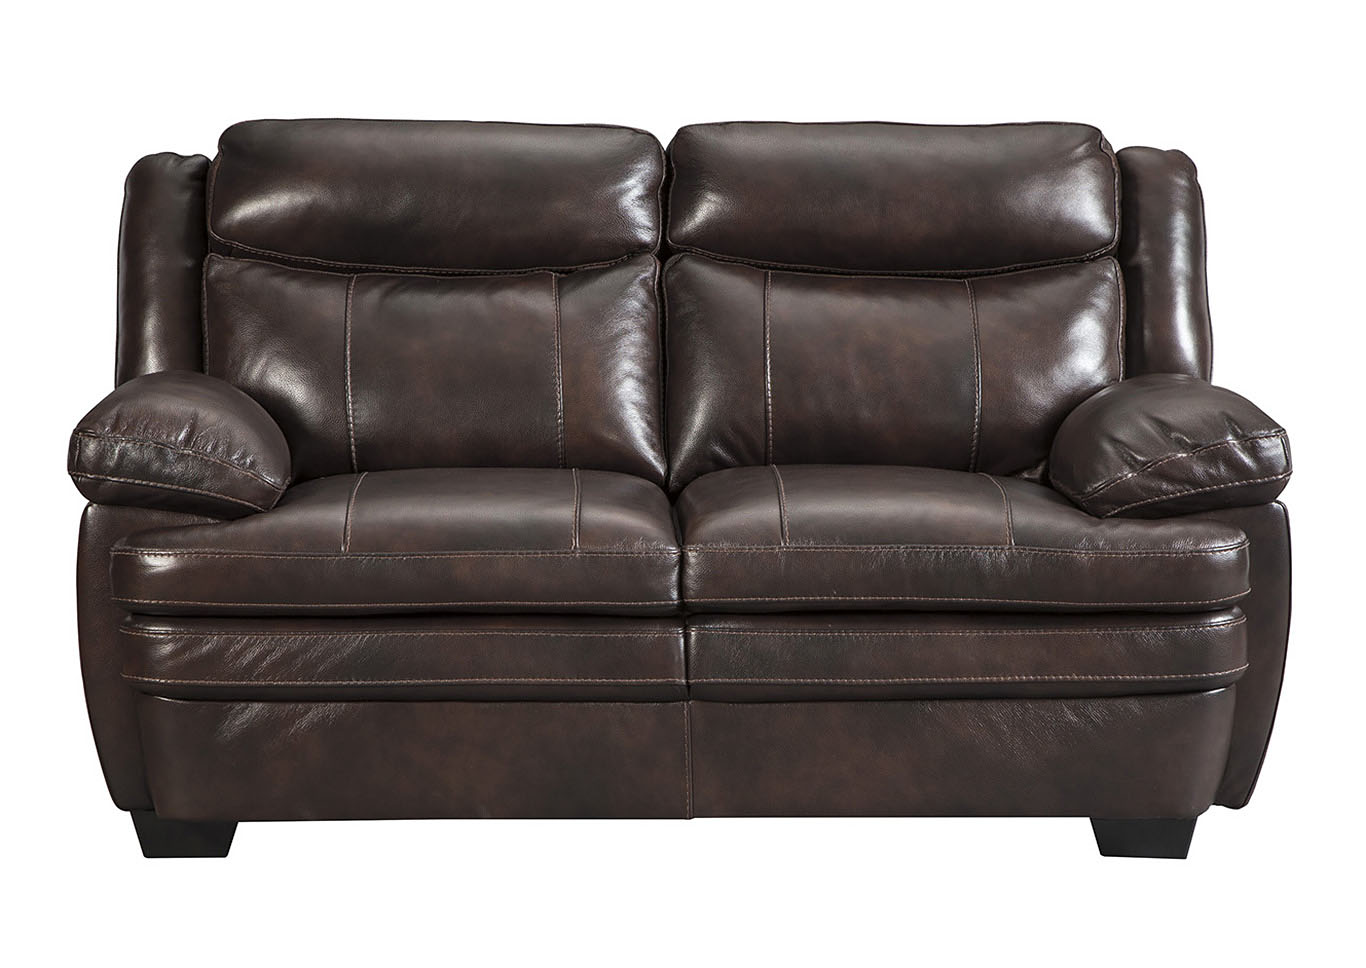 Hannalore Cafe Loveseat,Signature Design By Ashley